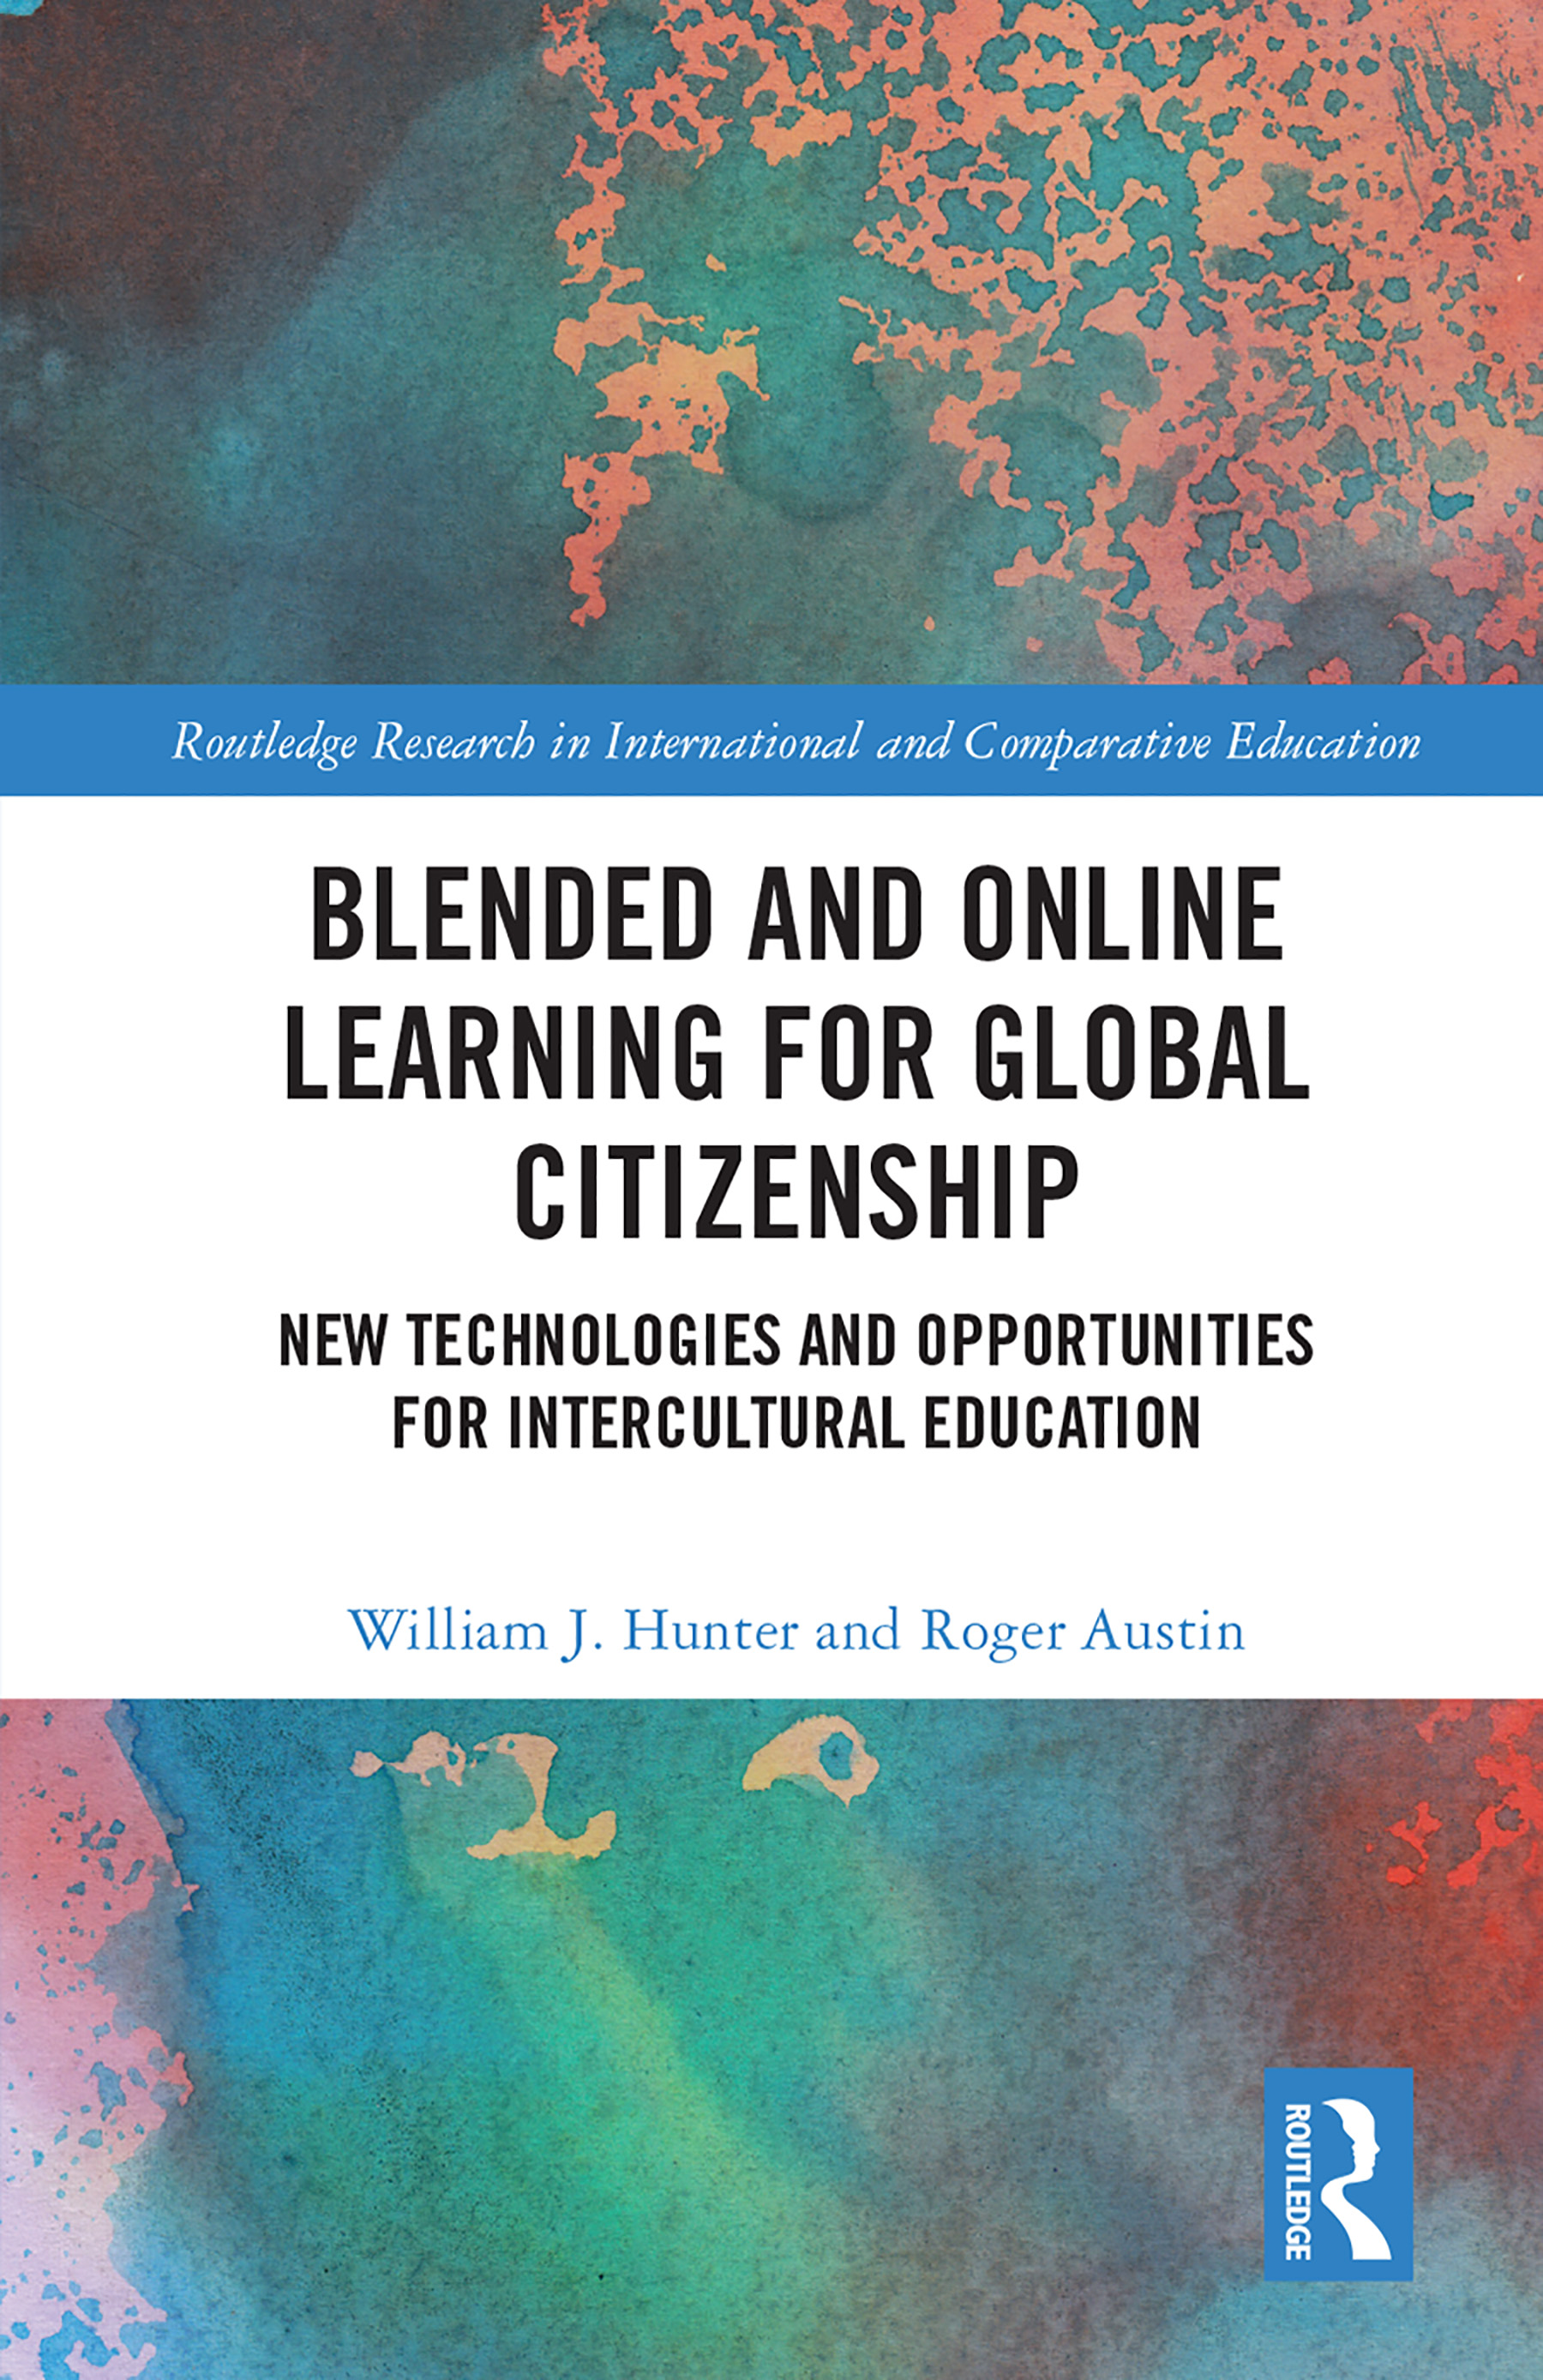 Blended Learning in an Age of Conflict